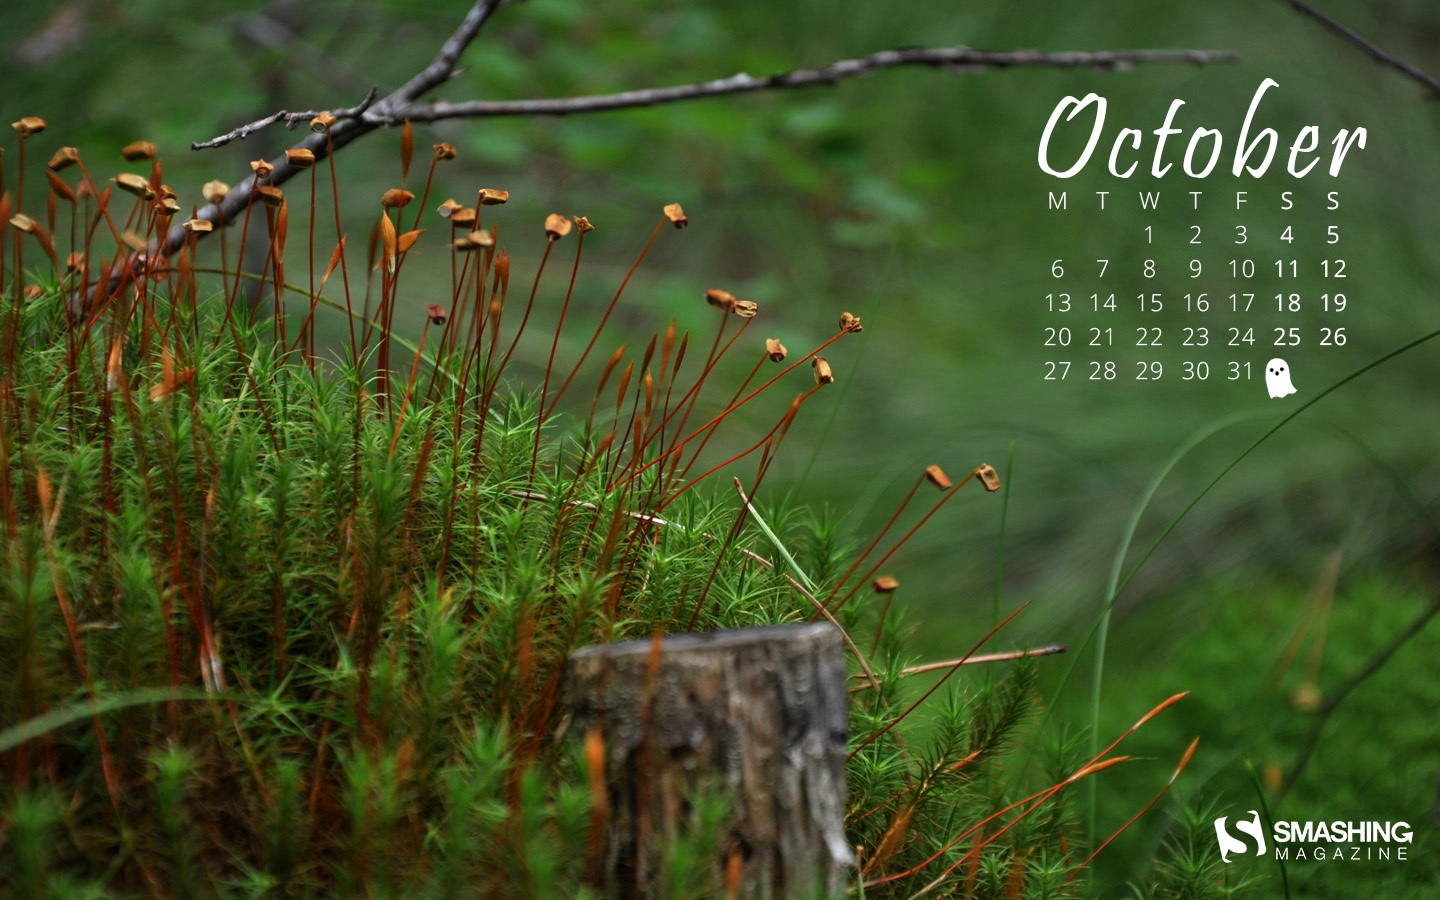 In January Calendar Wallpaper 50991